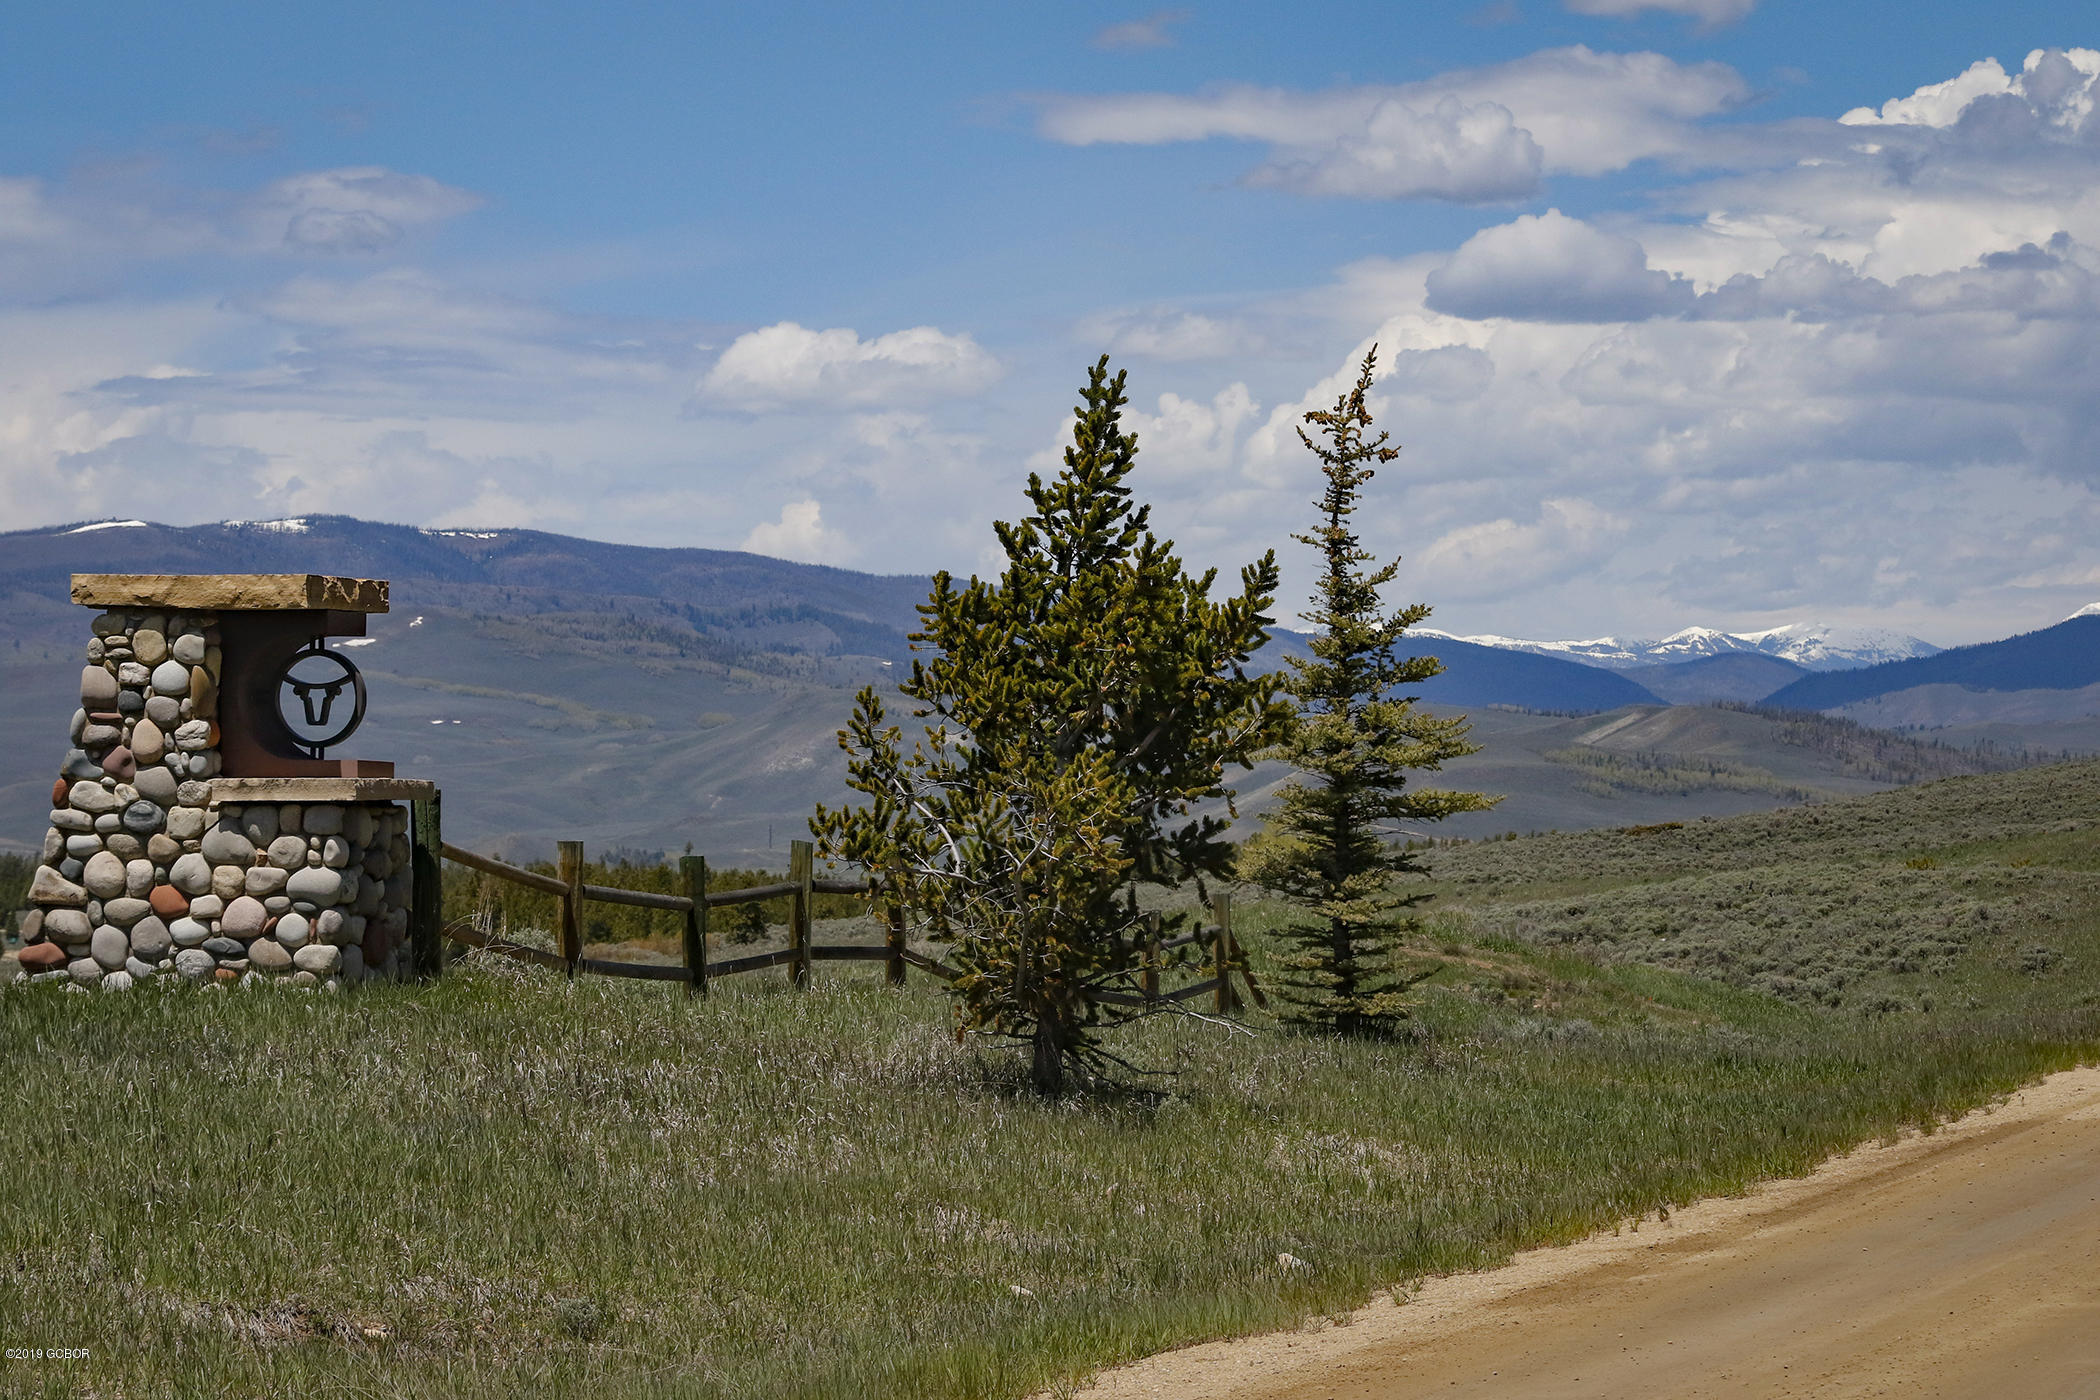 MLS# 19-704 - 2 - 612 County Rd 6237  #, Granby, CO 80446